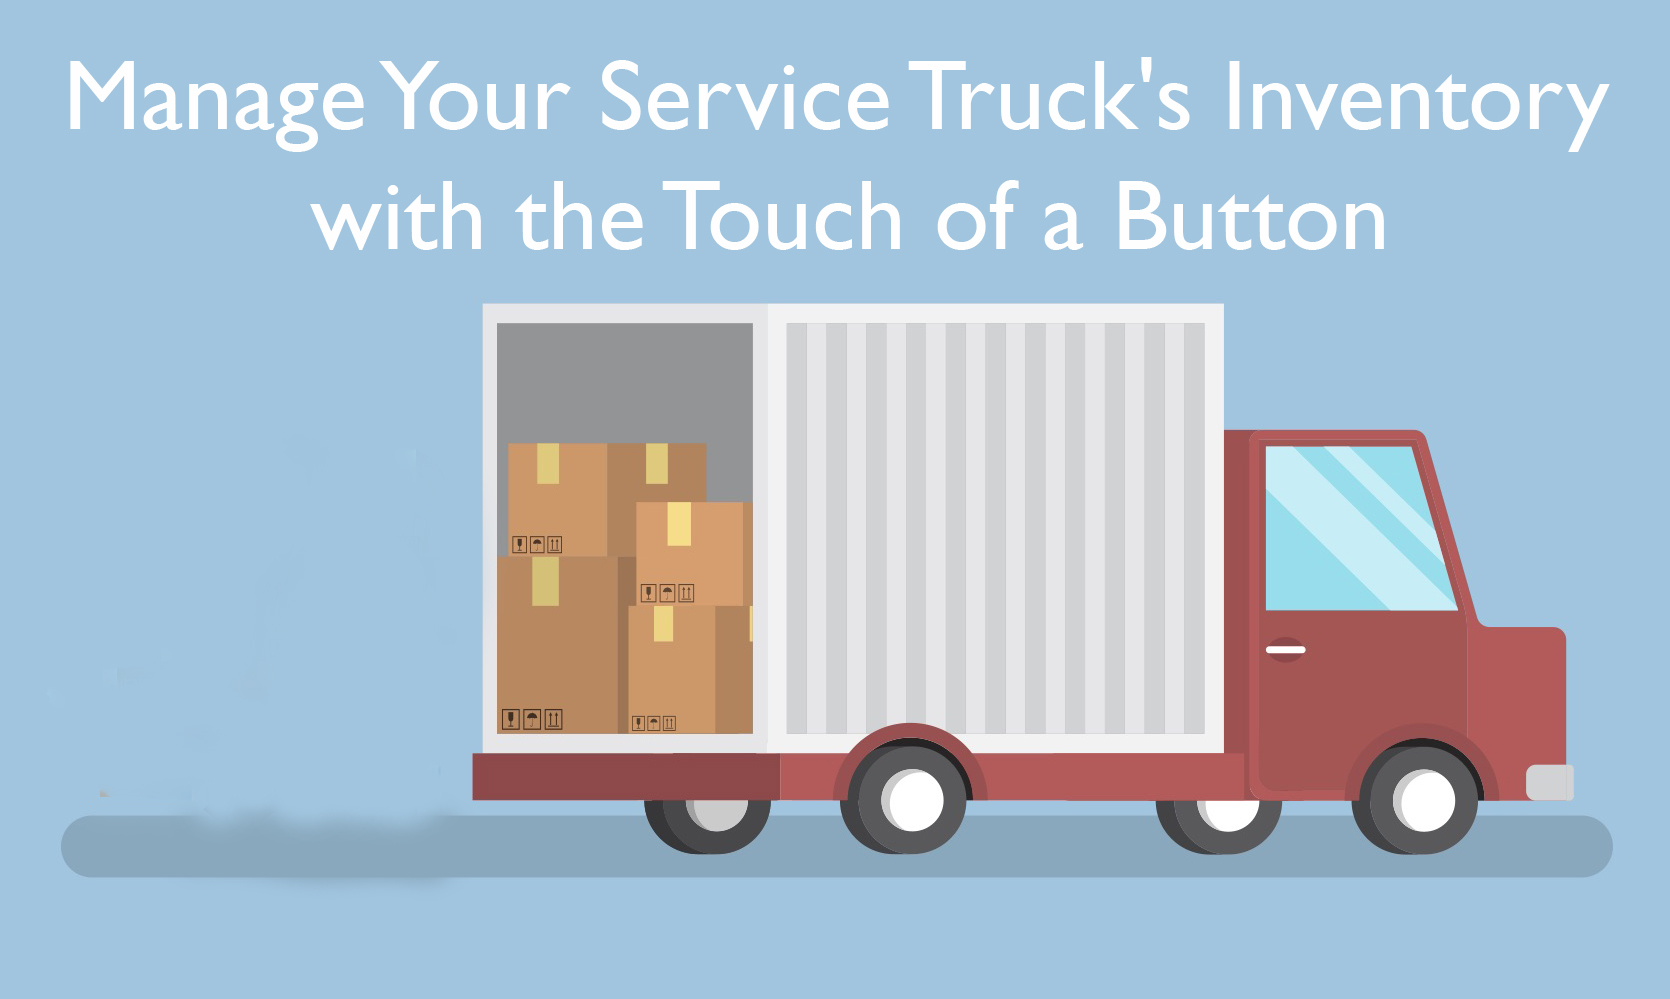 Manage Your Service Truck's Inventory with the Touch of a Button